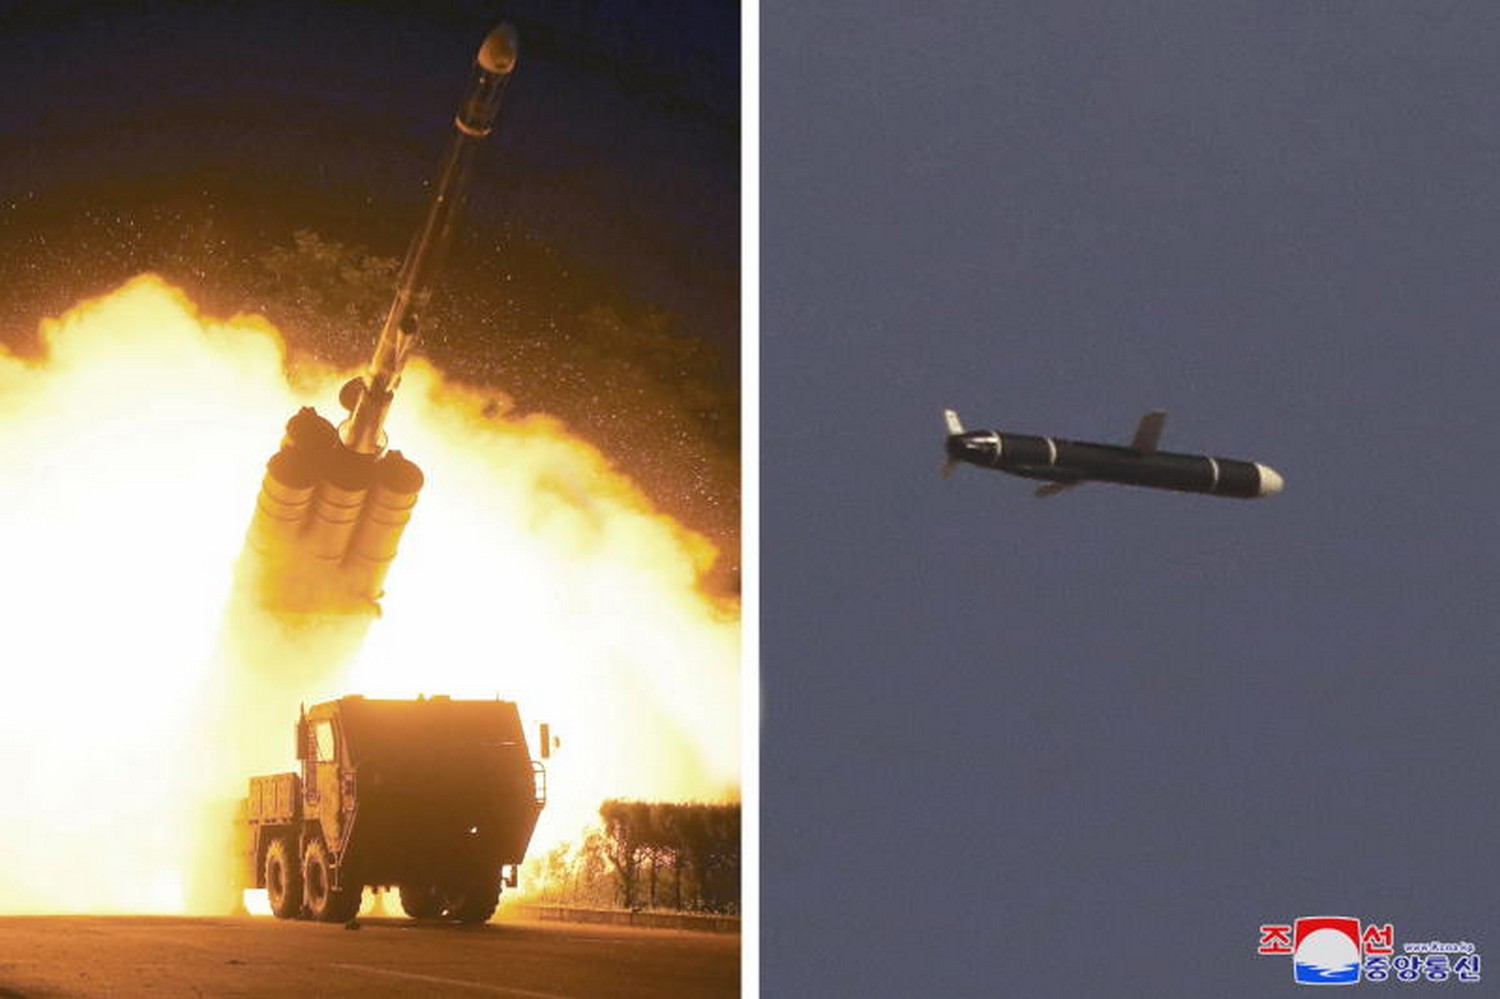 Undated photos supplied by North Korea's Korean Central News Agency (KCNA) on Sept 13 purport to show a long-range cruise missile test. (Photo: KCNA via Reuters)